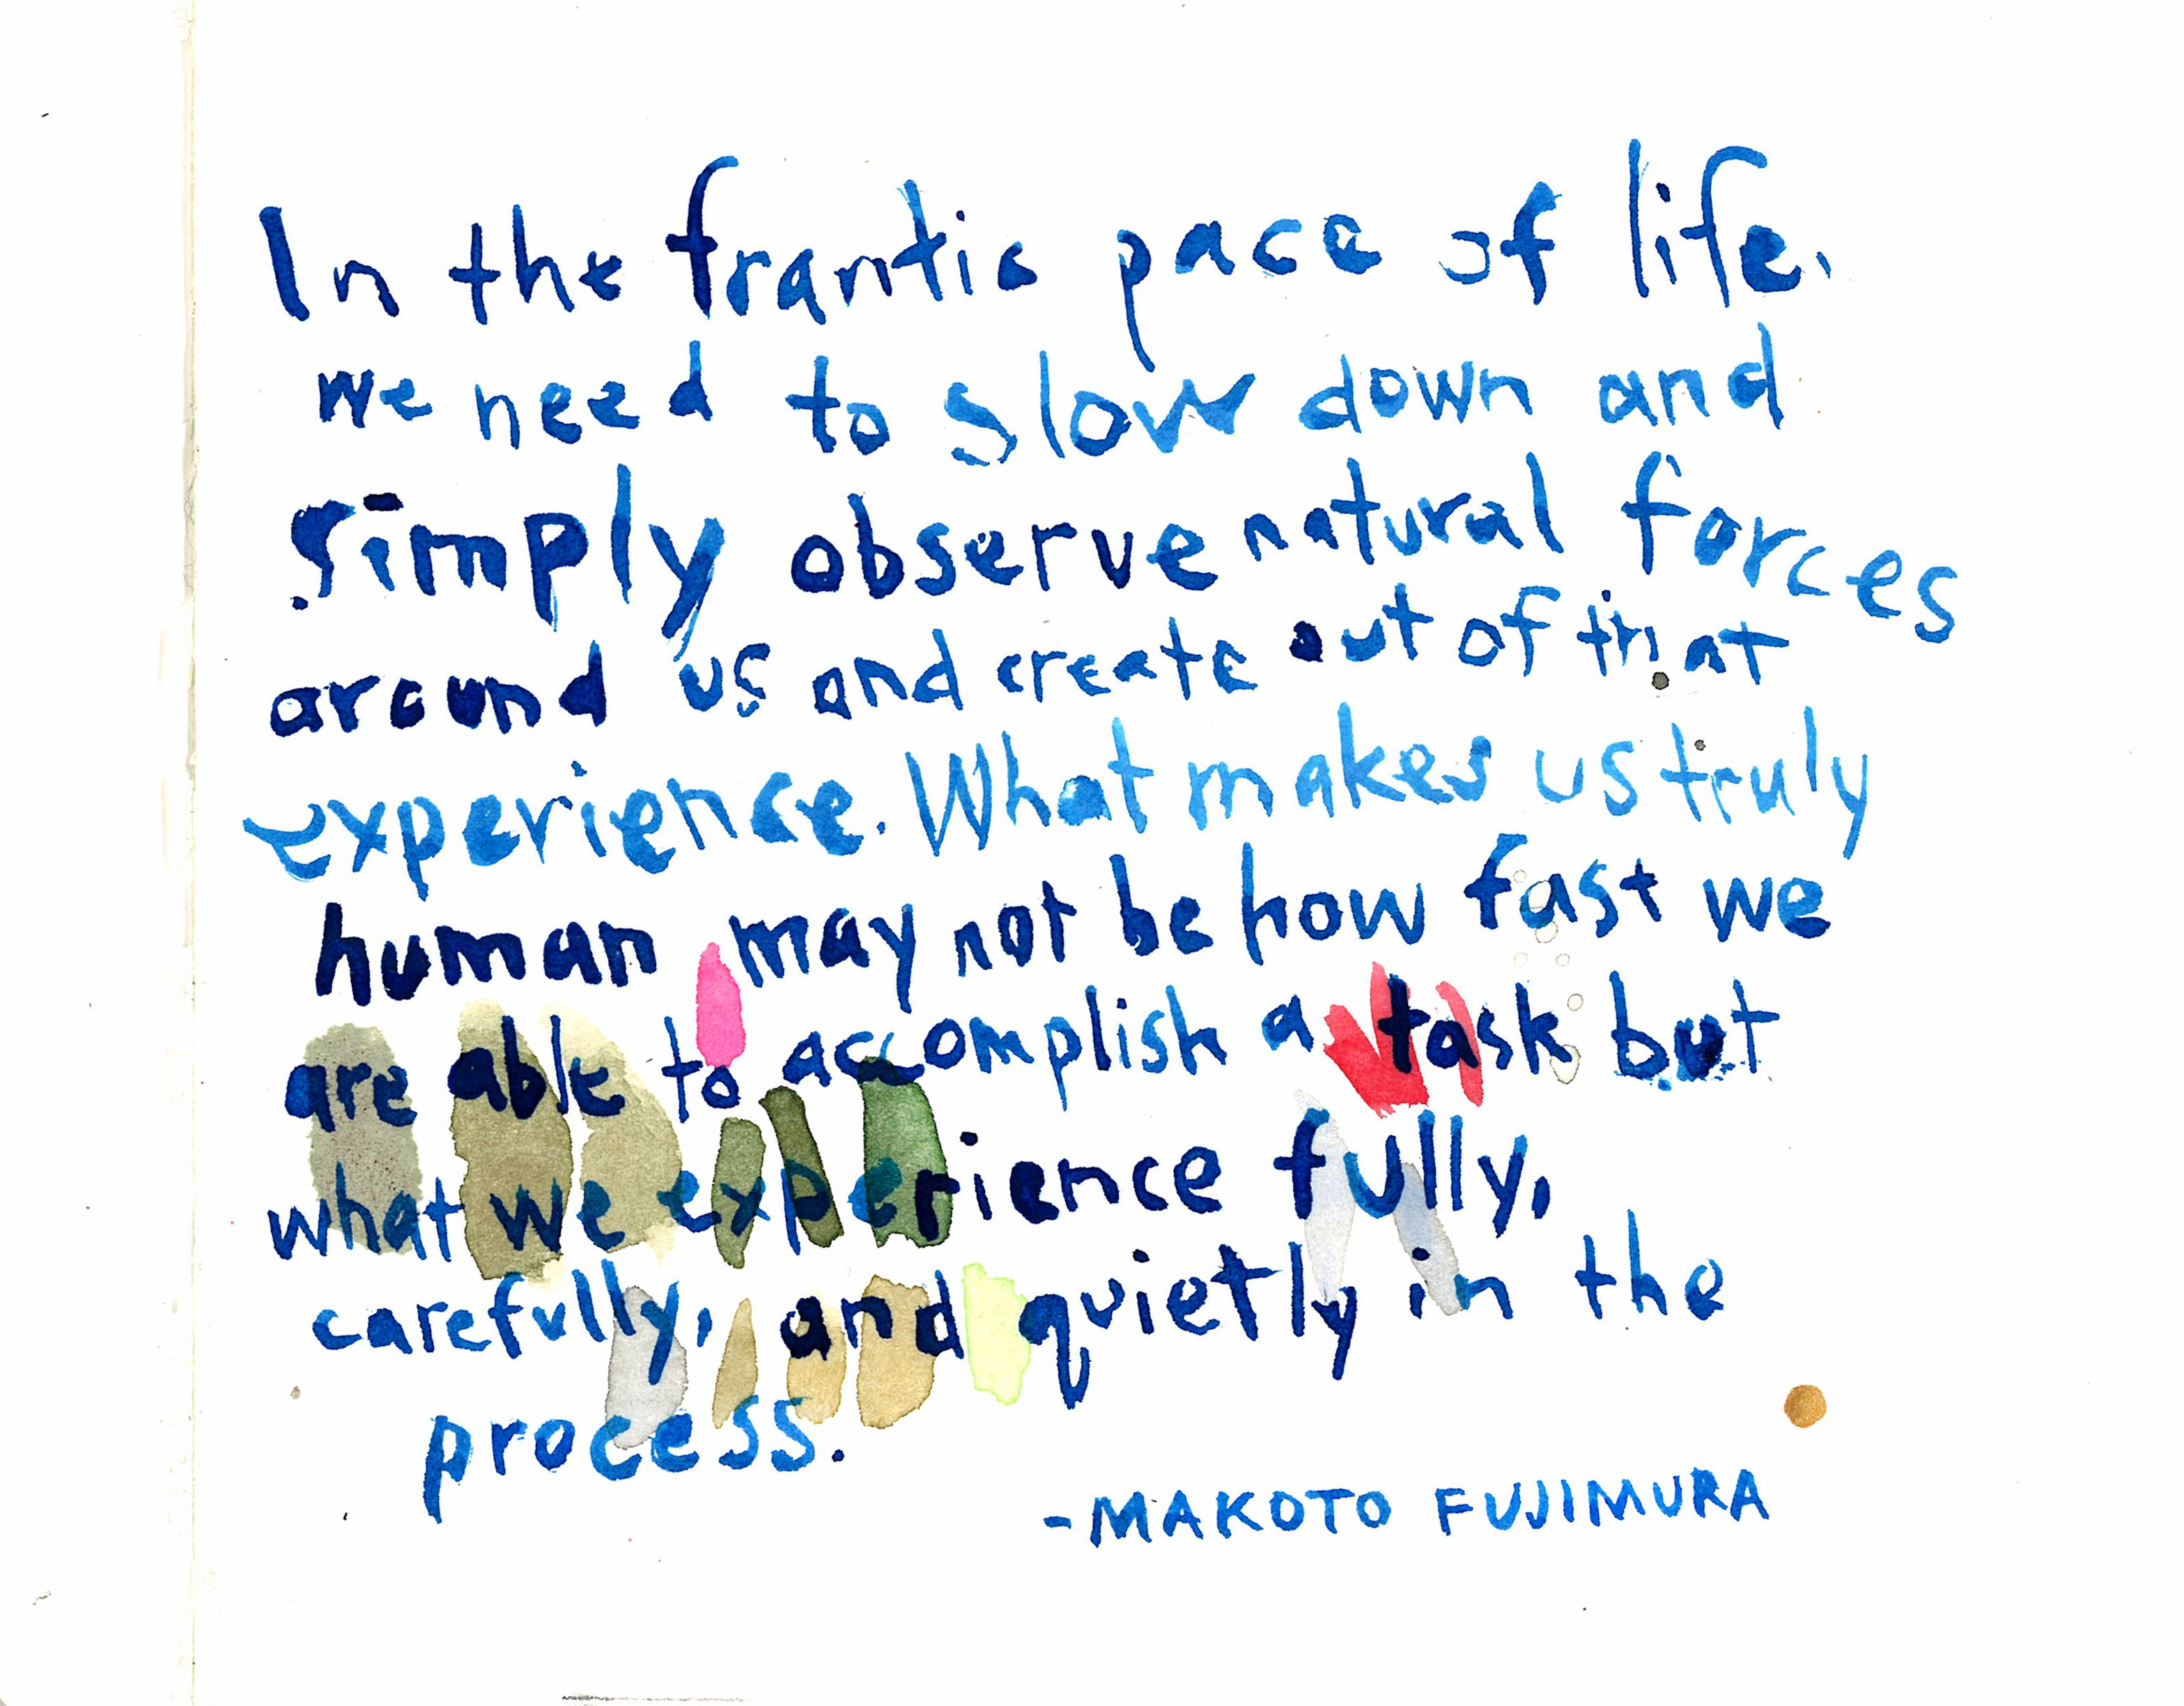 Makoto Fujimura | Cool words, Words, Thoughts